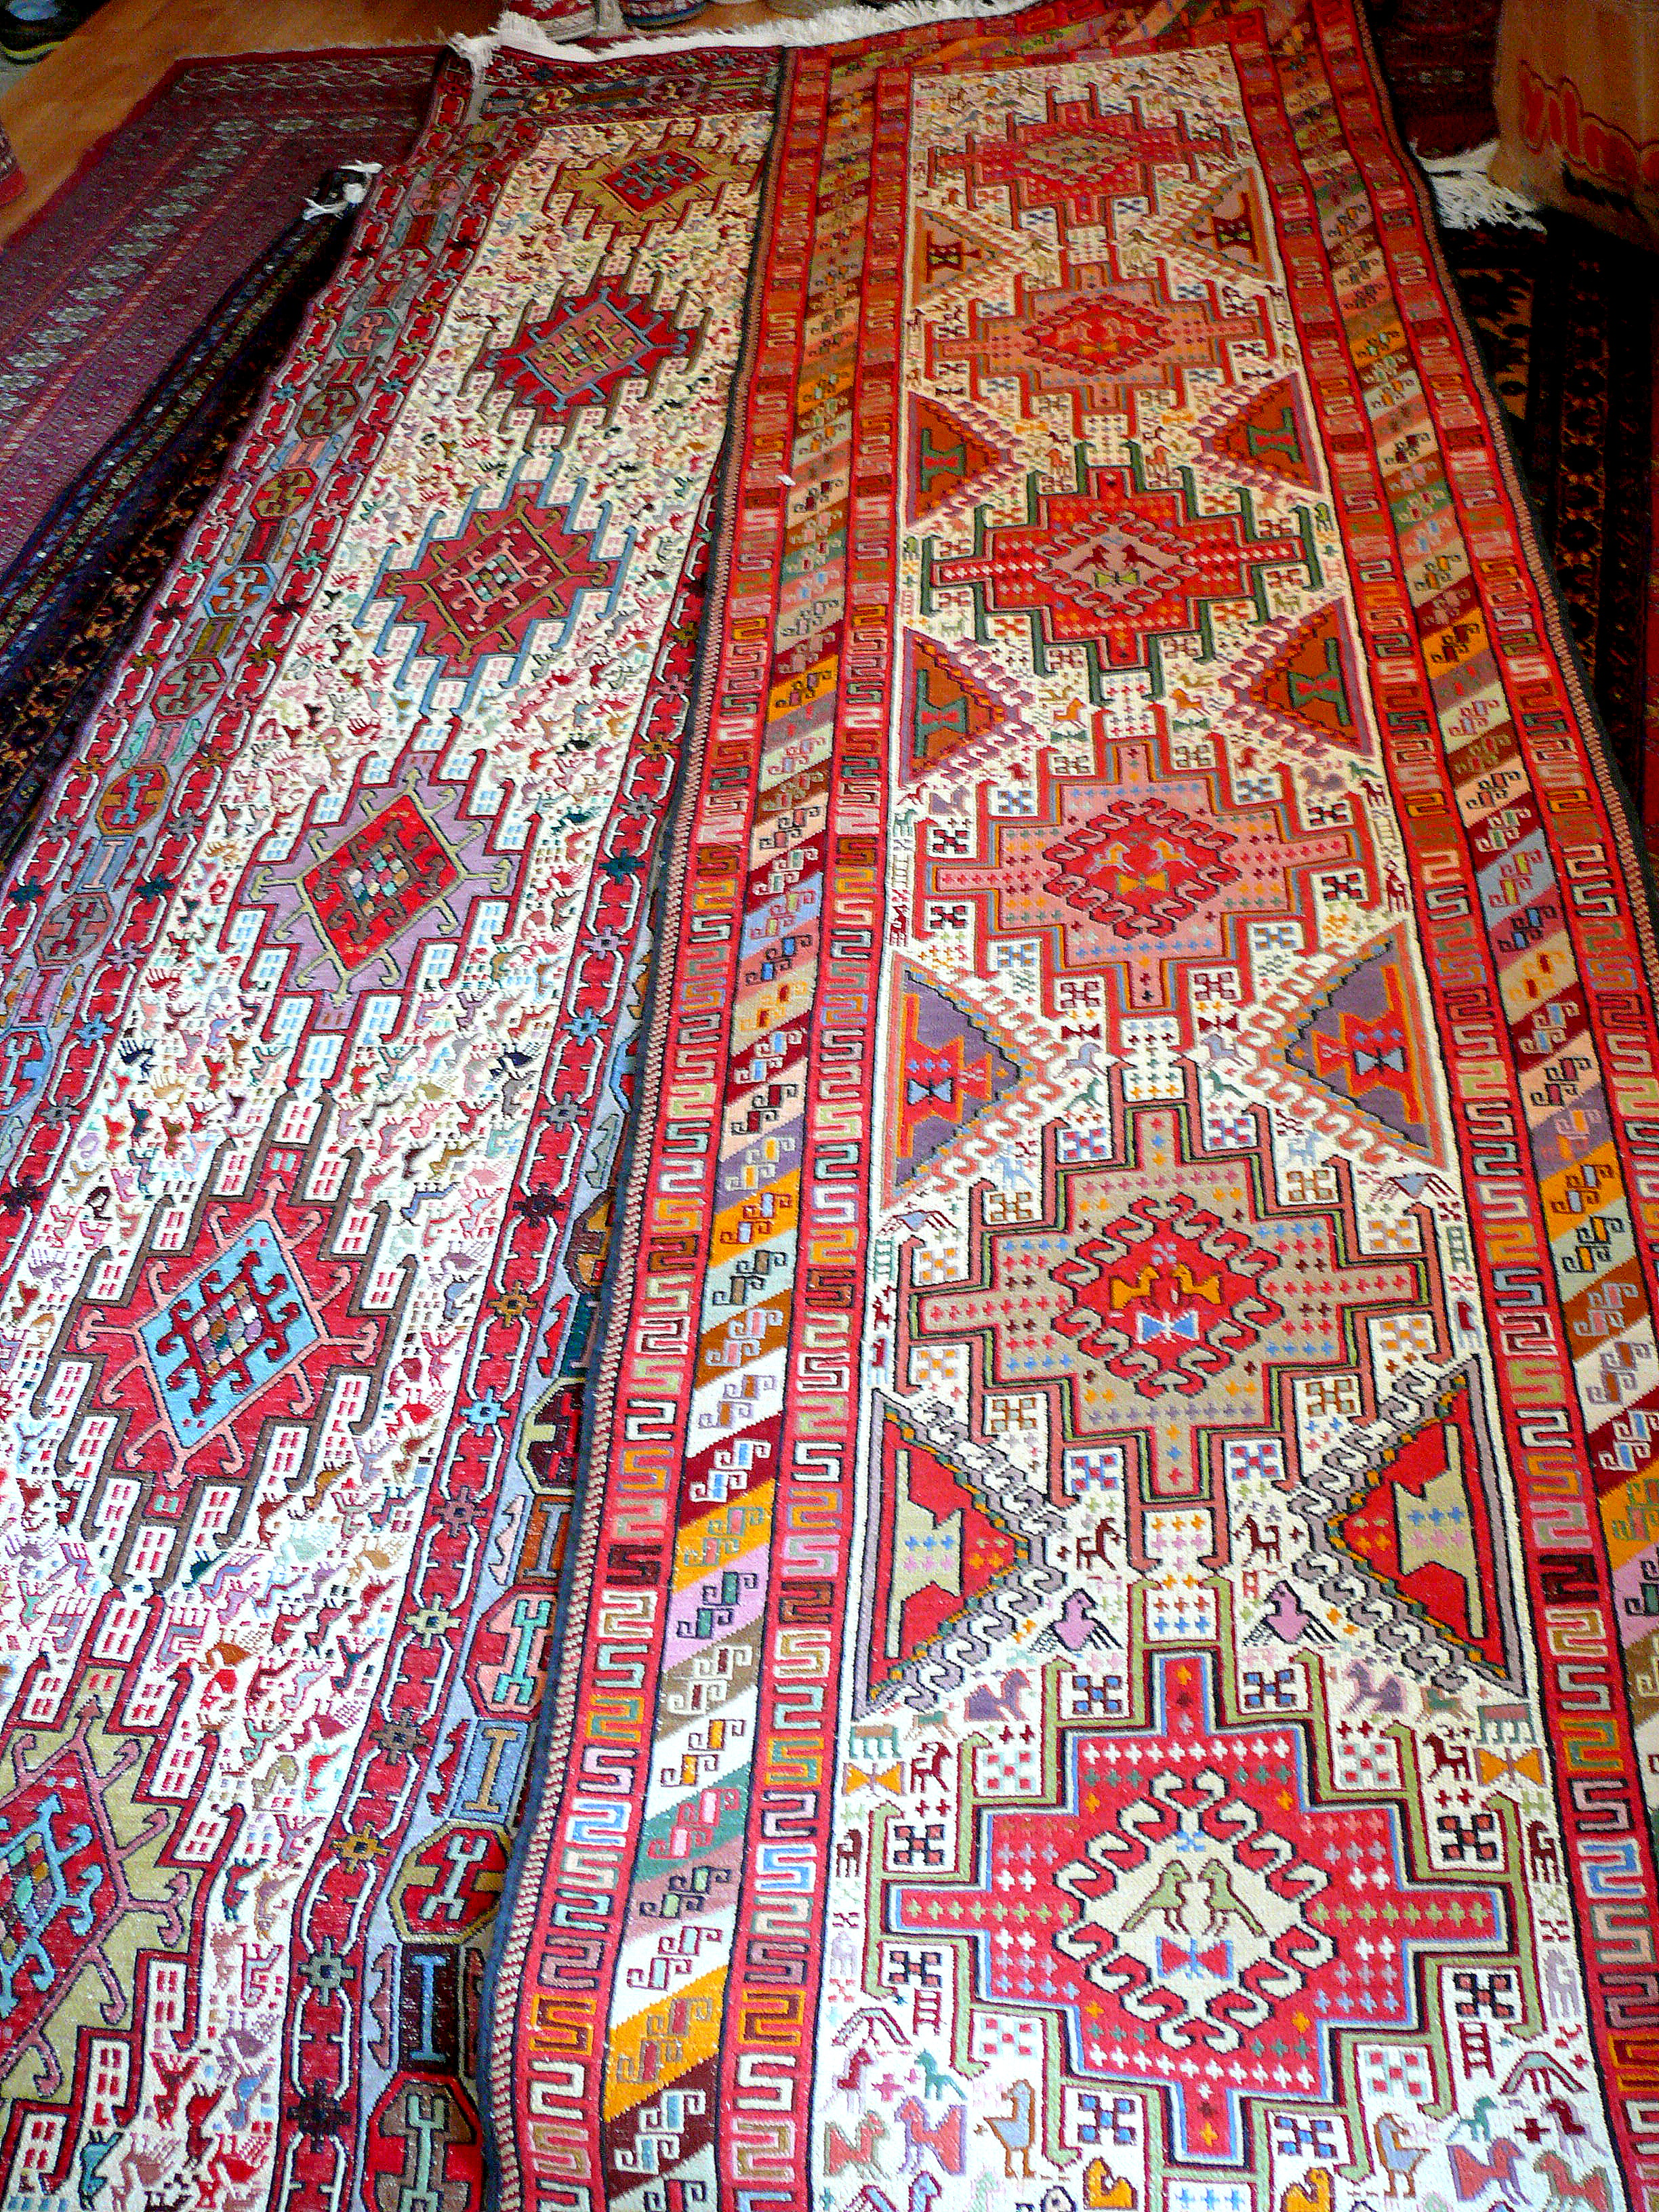 Azerbaijani Carpets 9 Things You Need To Know About Them